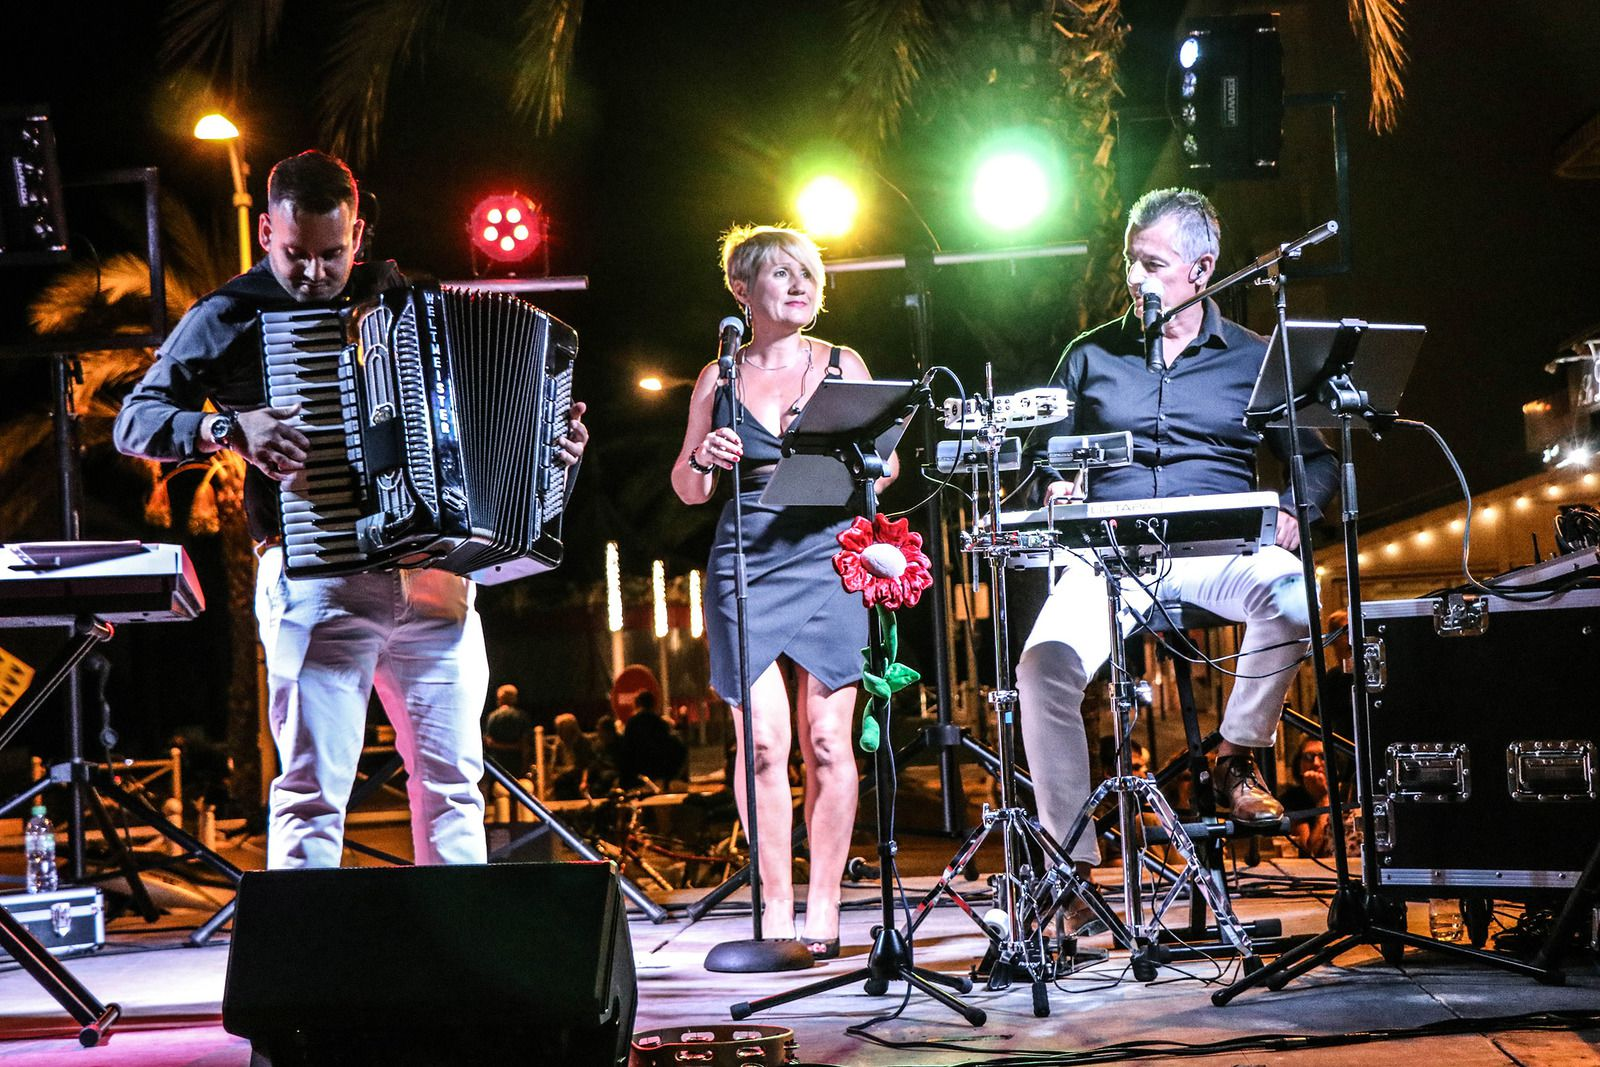 Groupe musical Vaucluse